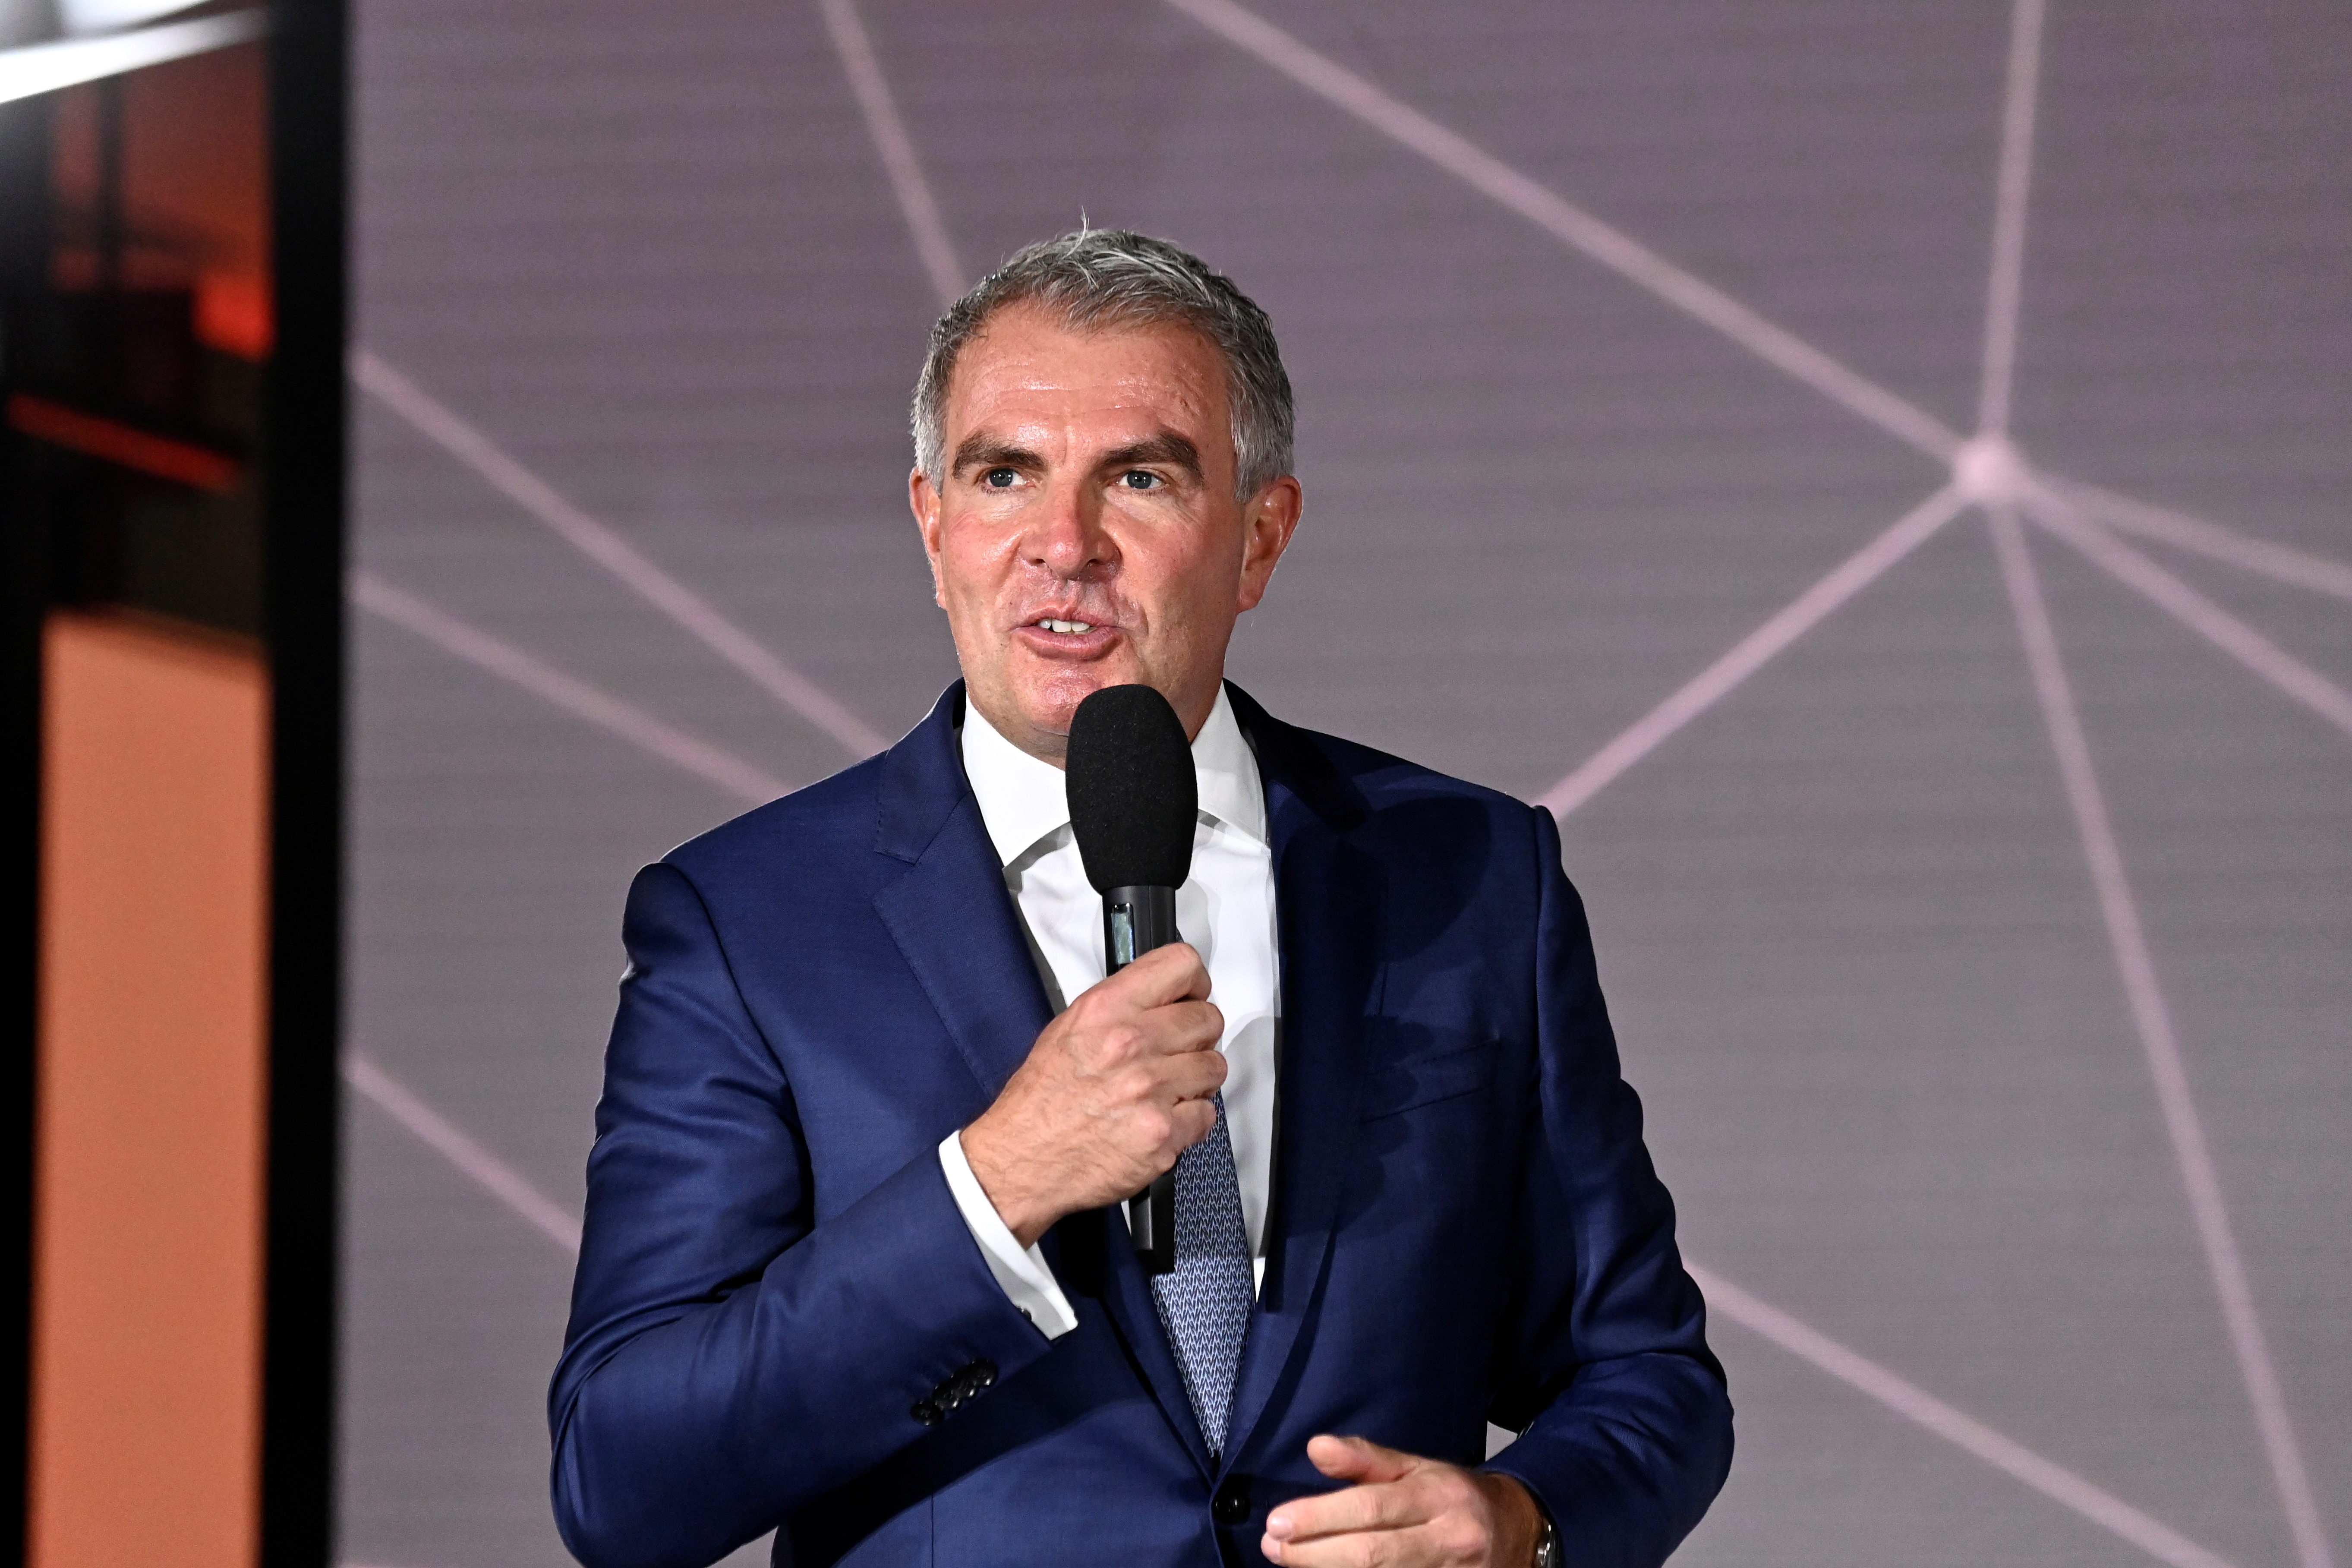 CEO of Lufthansa, Carsten Spohr, delivers a speech during the opening ceremony of the new Berlin-Brandenburg Airport (BER)